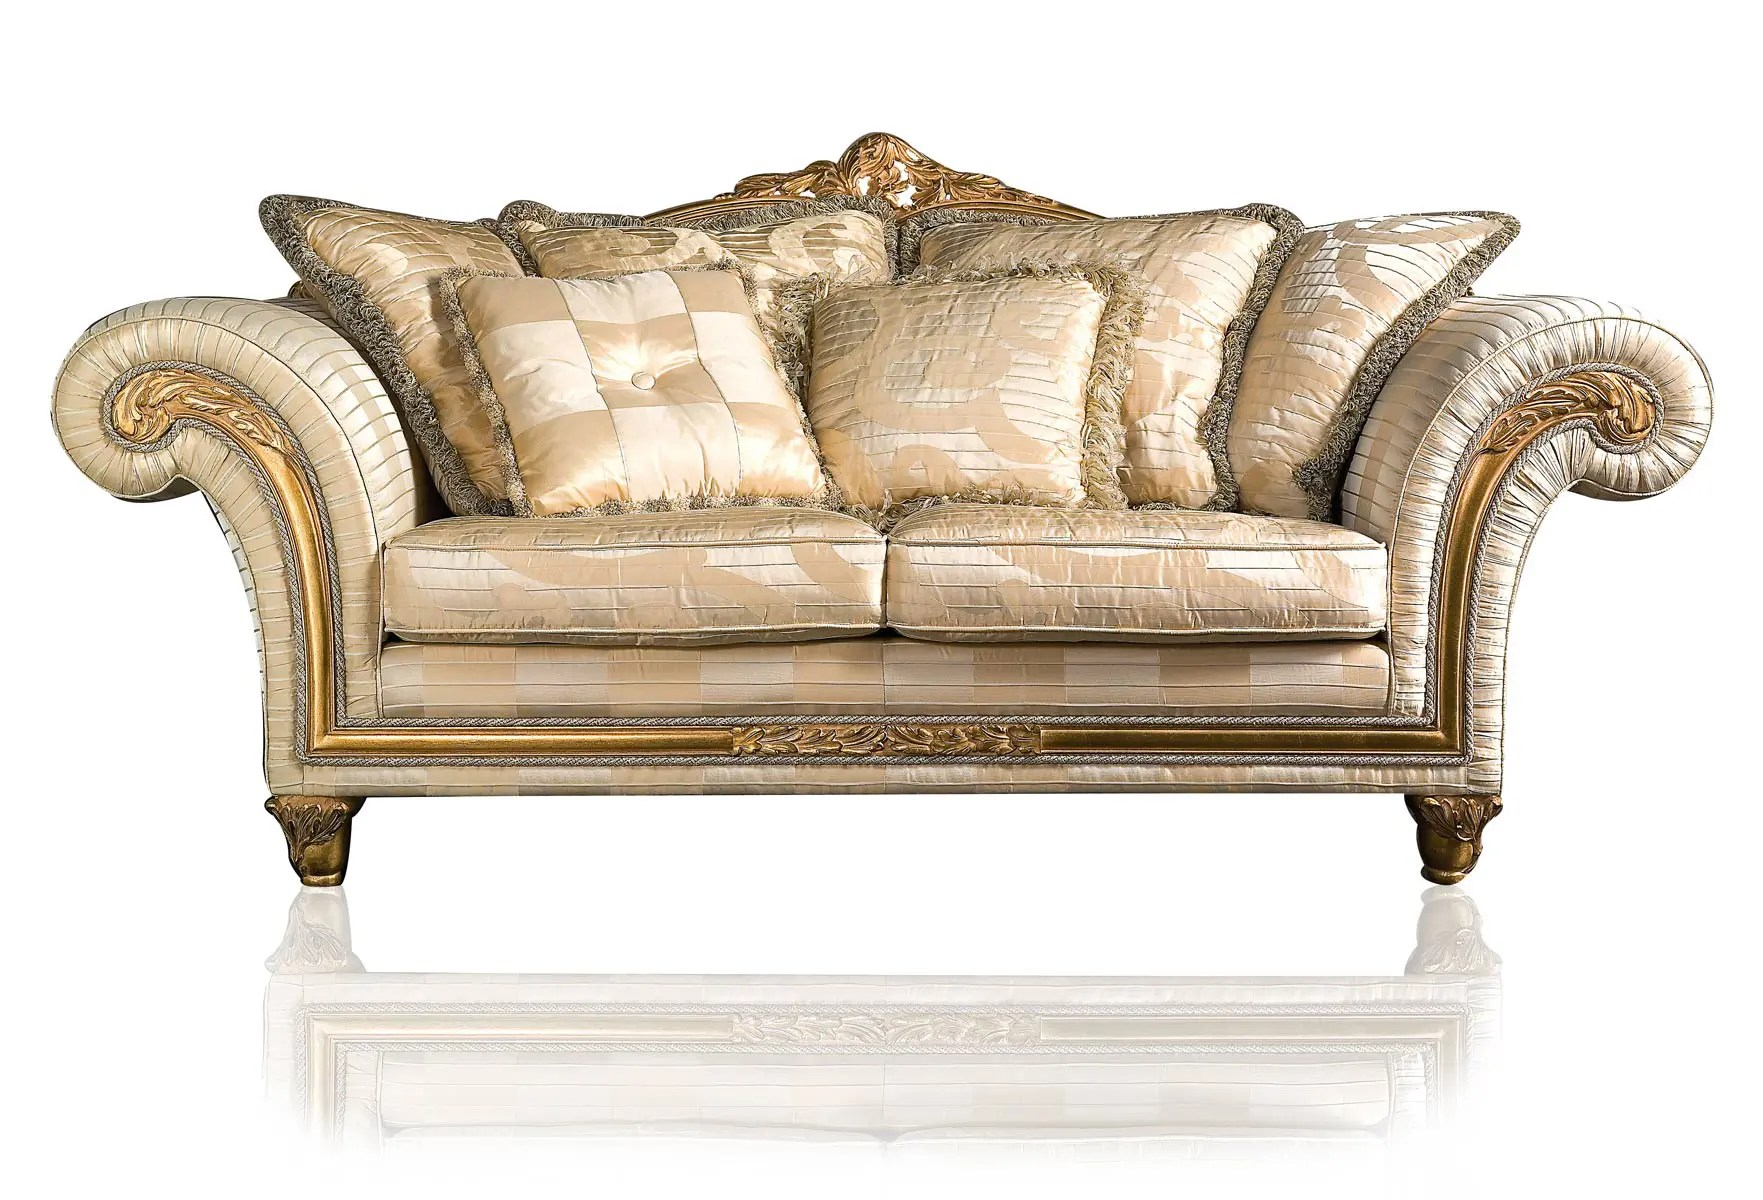 Couch Furniture Luxury Classic Sofa And Armchairs Imperial By Vimercati